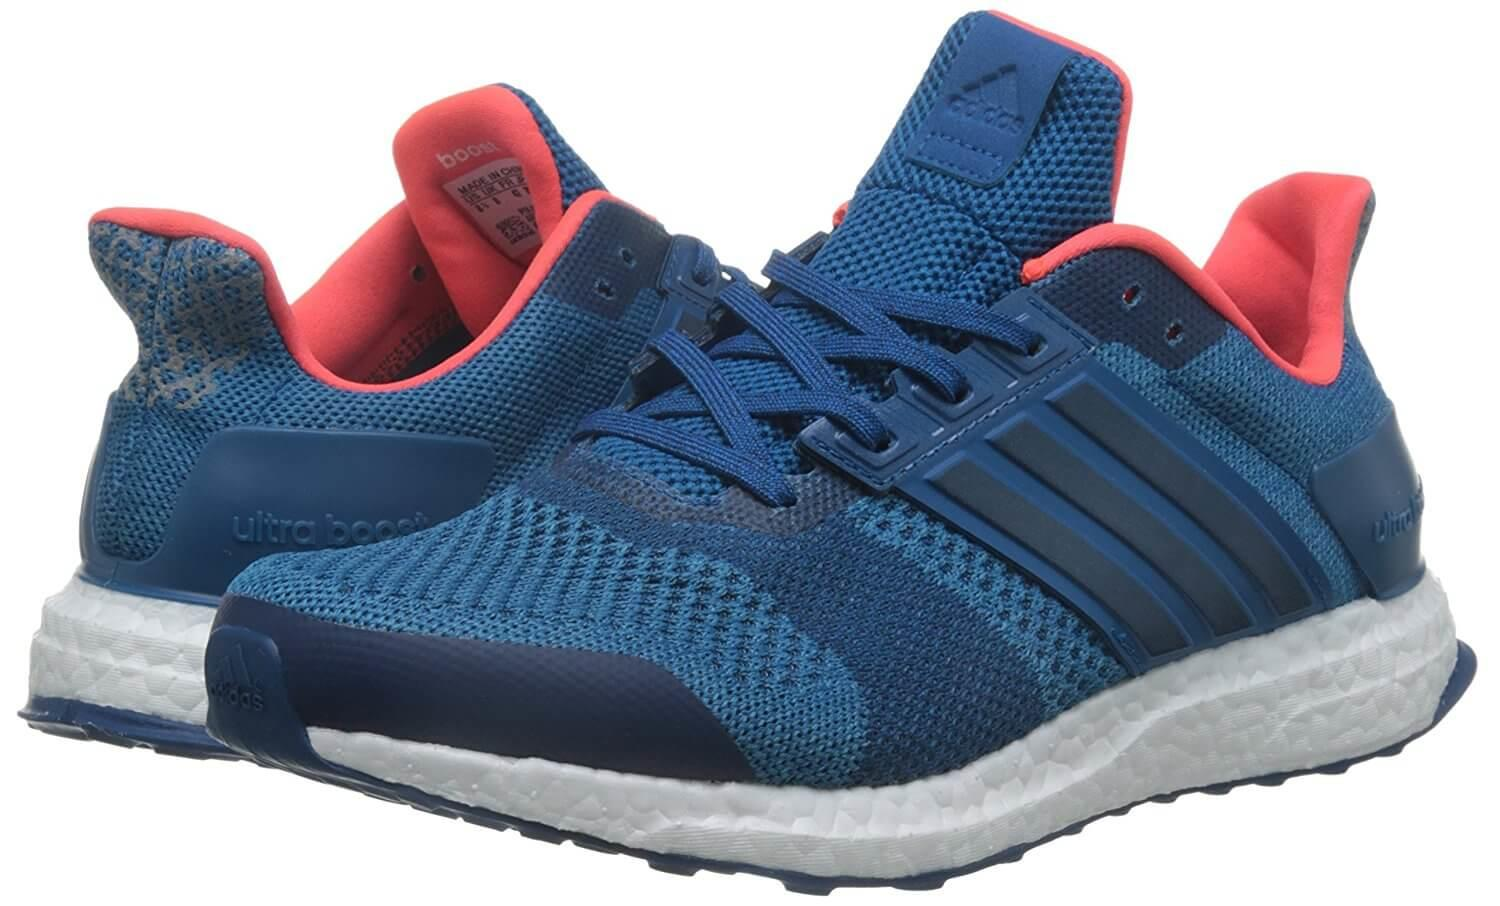 Adidas Ultra Boost ST Review - Buy or Not in Mar 2019  c922eb182